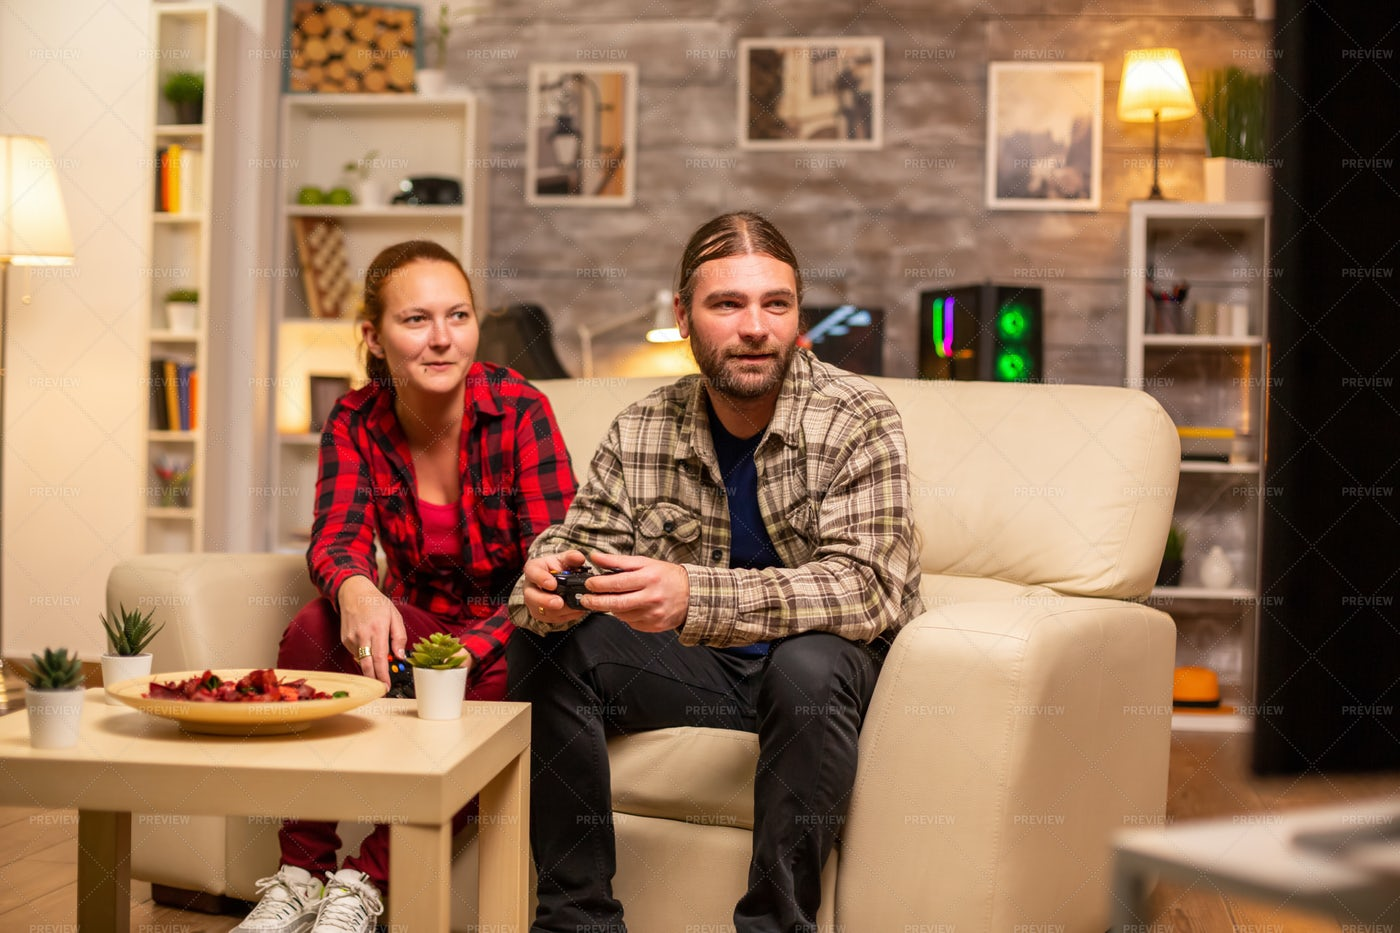 Gamers Couple Playing Video Games: Stock Photos